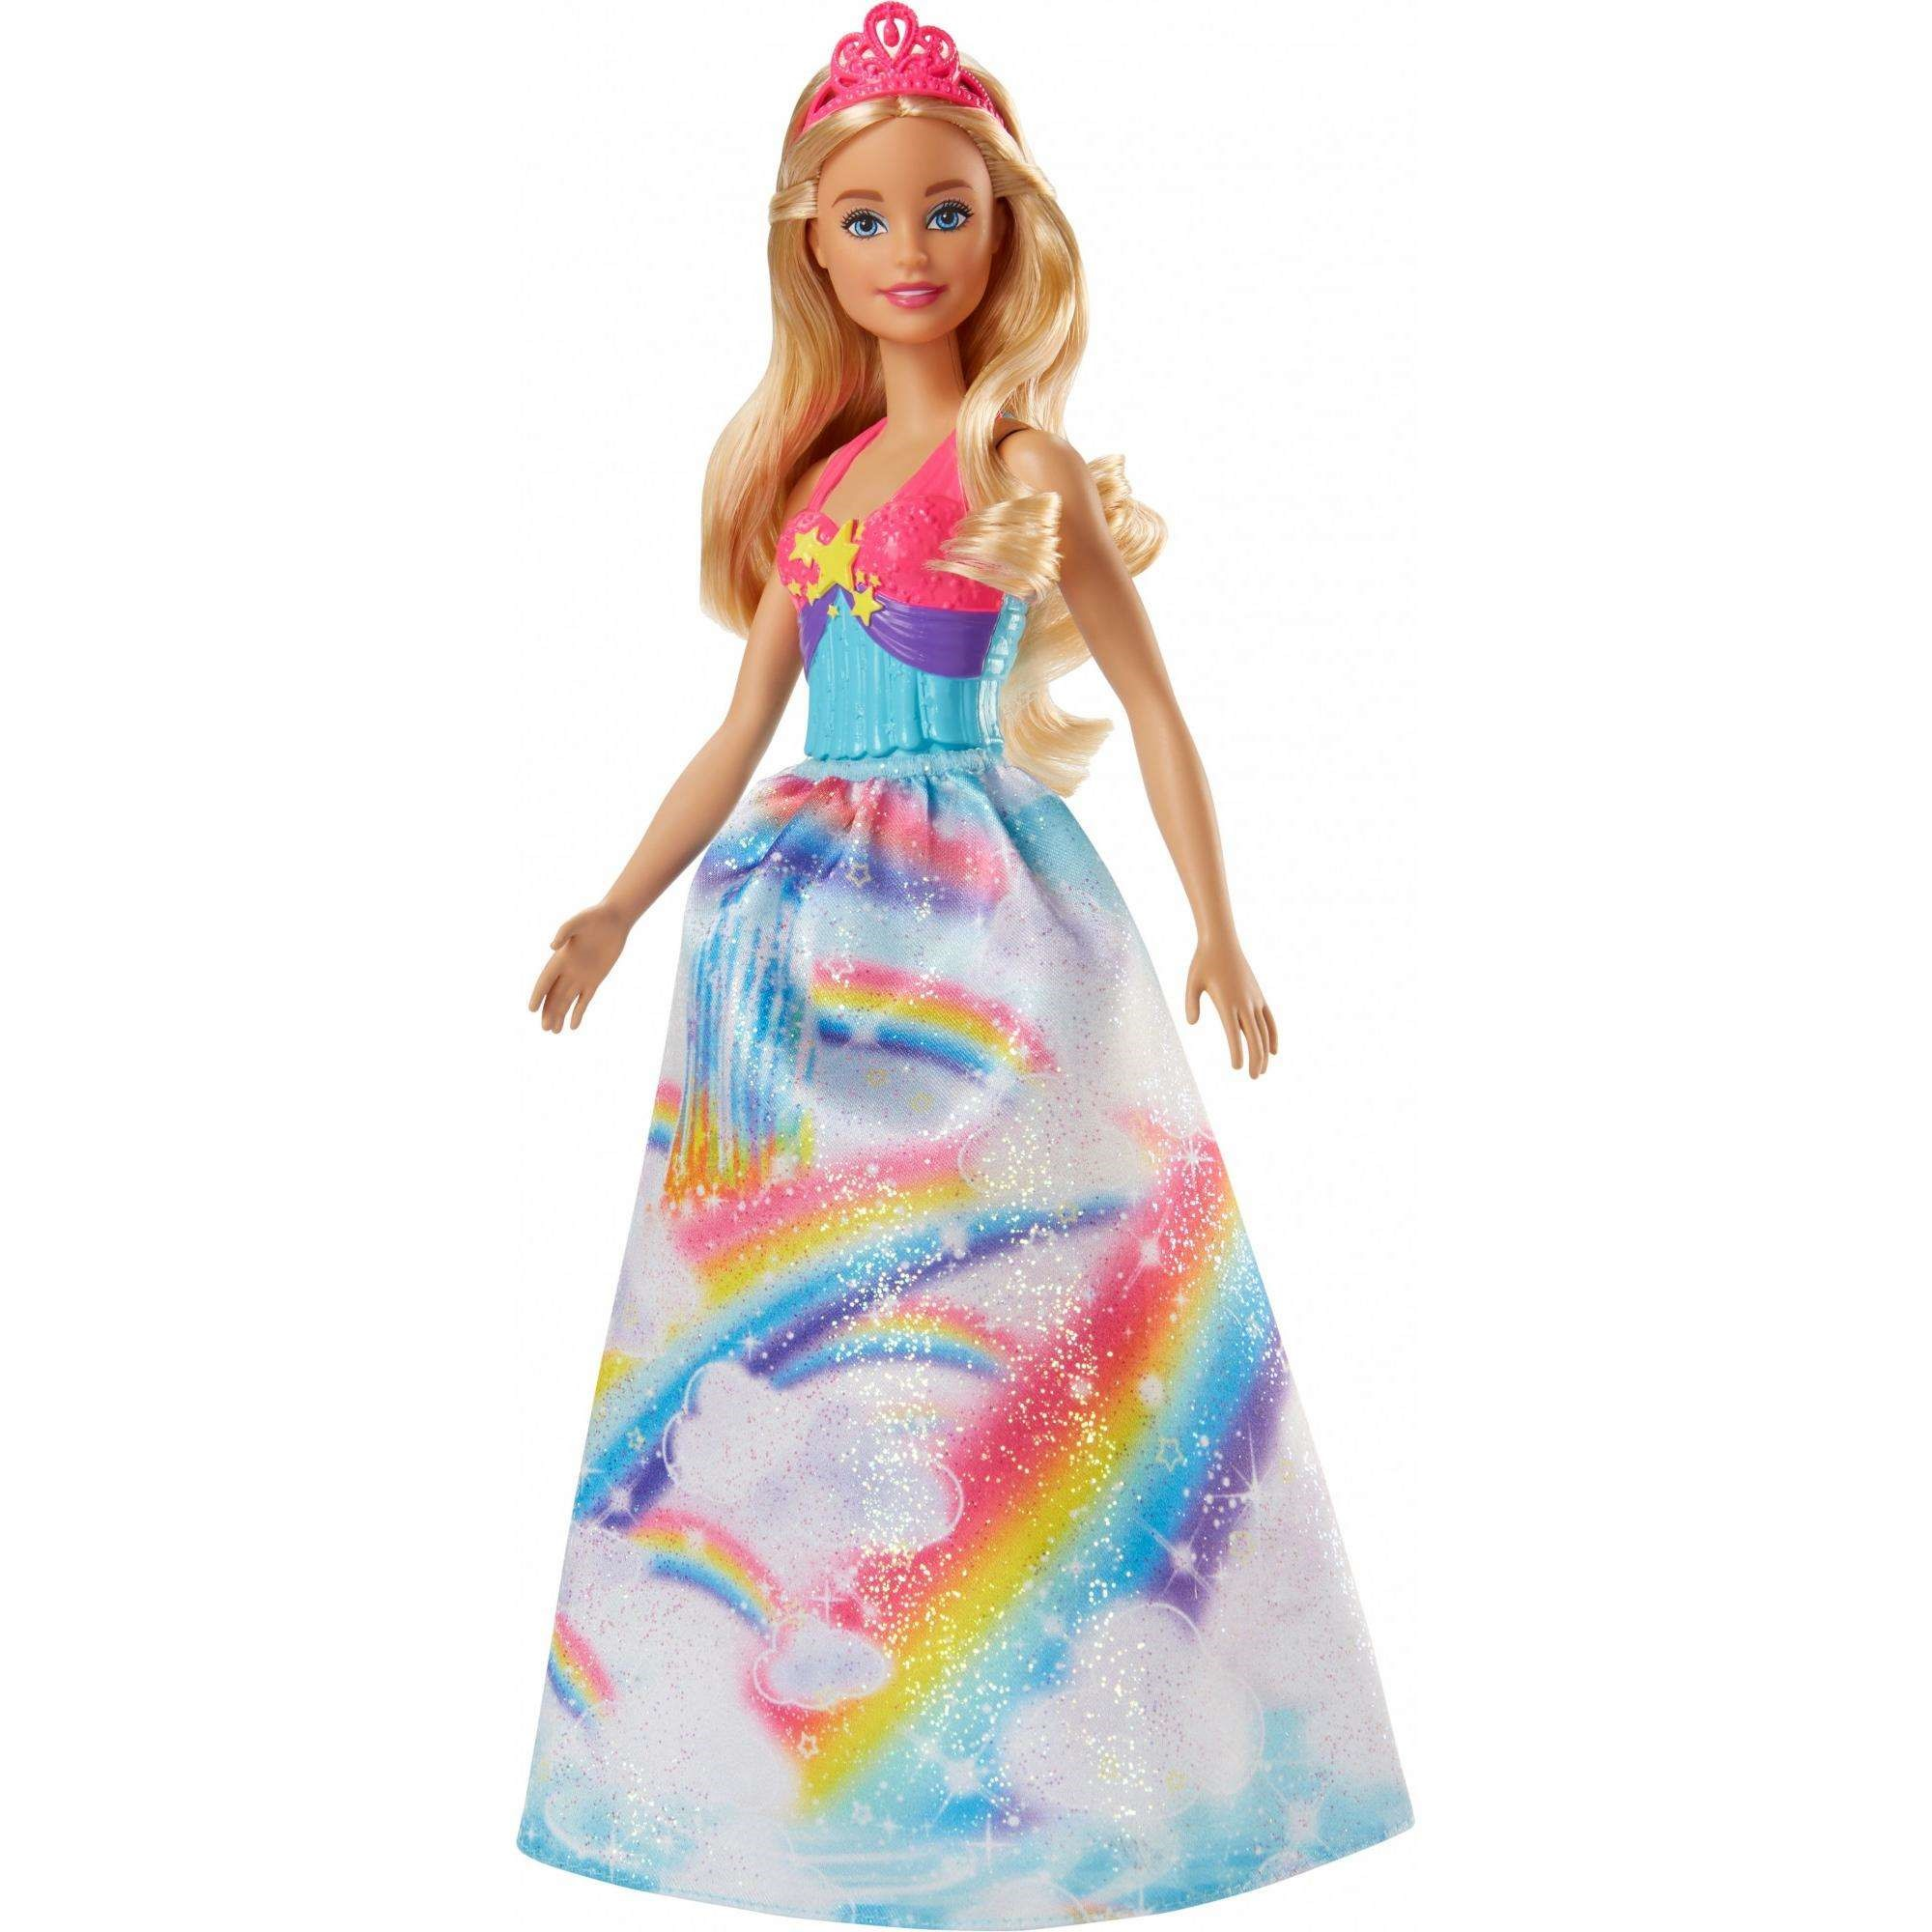 Barbie Dreamtopia Princess Doll, Blond